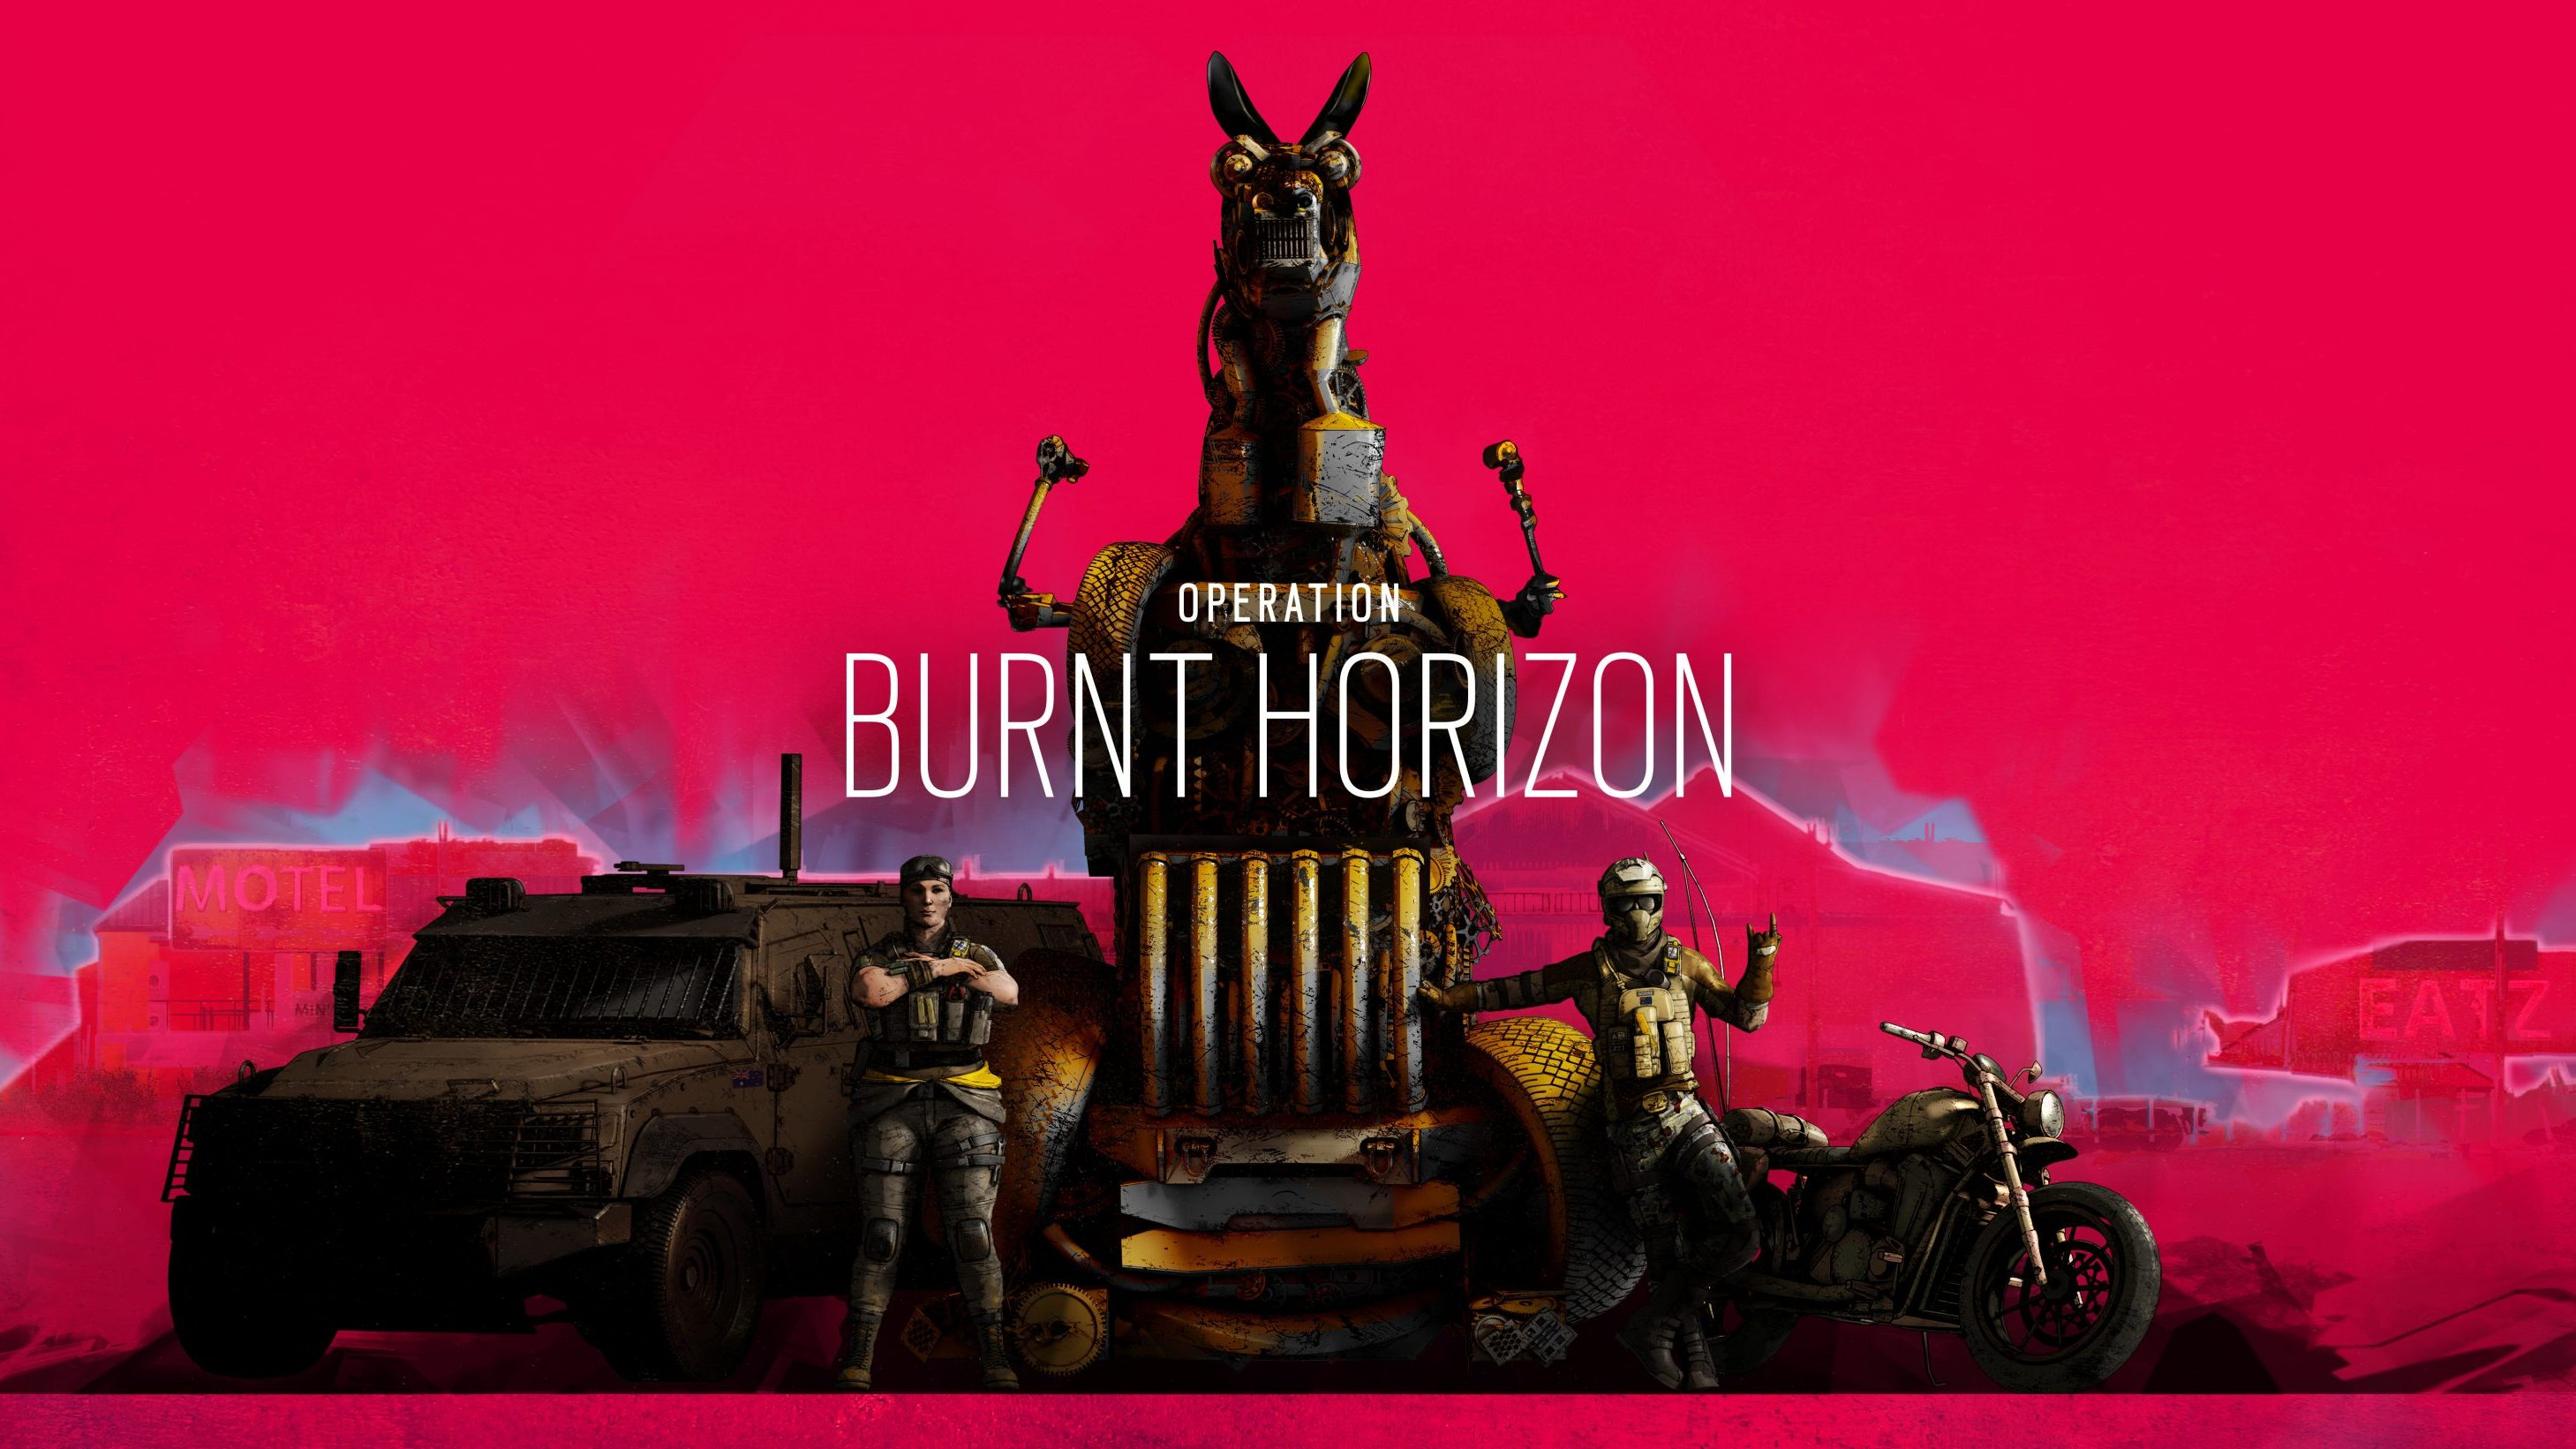 Oi Ya Bloody Drongos, Rainbow Six Siege Operation Burnt Horizon is available now